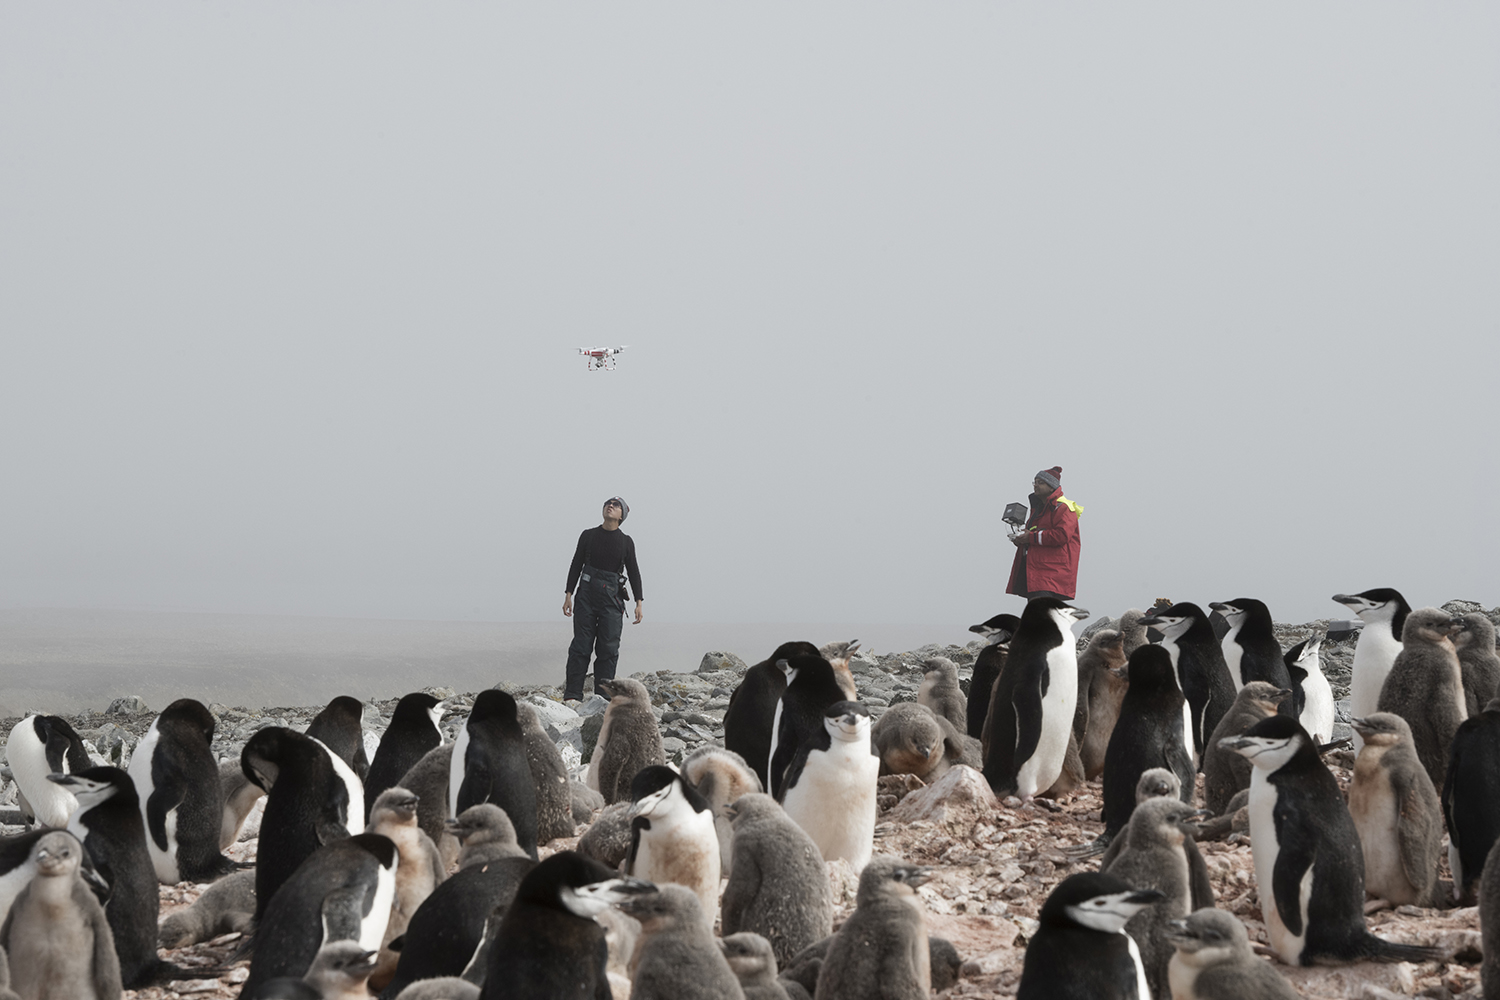 Low Island, Antarctica.Scientists Yang Liu and Vikrant Shah from Northeastern University count the chinstrap population with the help of a drone and then uses machine learning to do automated count of penguin colonies in Antarctica.*This picture was taken in 2020 during the Antarctic leg of the Pole to Pole expedition under the Dutch permit number RWS-2019/40813